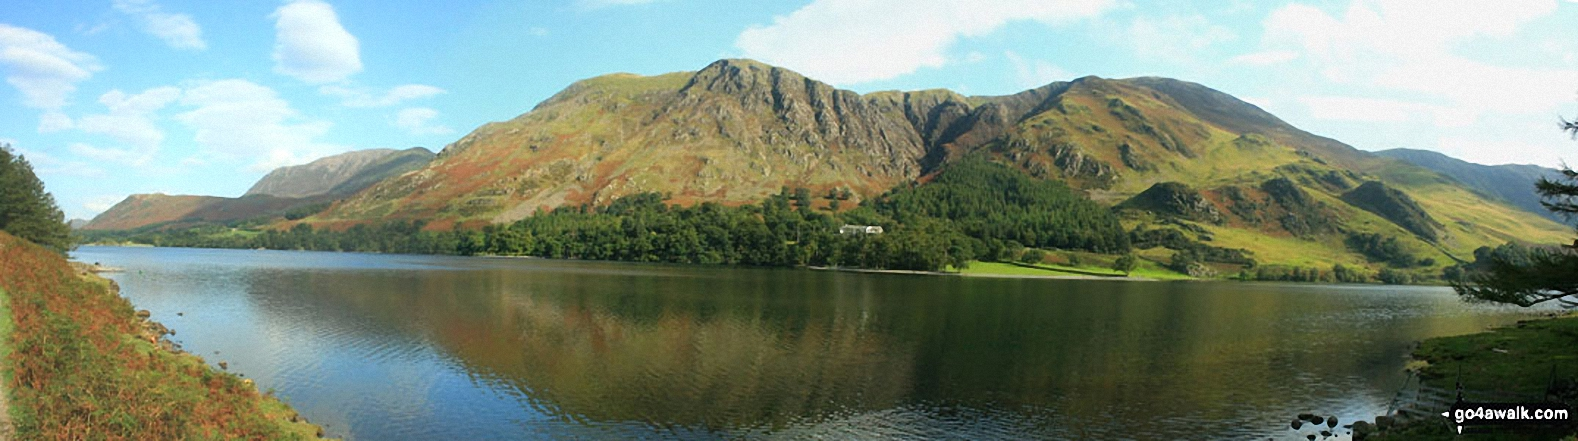 Walk c219 A Circuit of Buttermere from Buttermere - High Snockrigg and Robinson across Buttermere